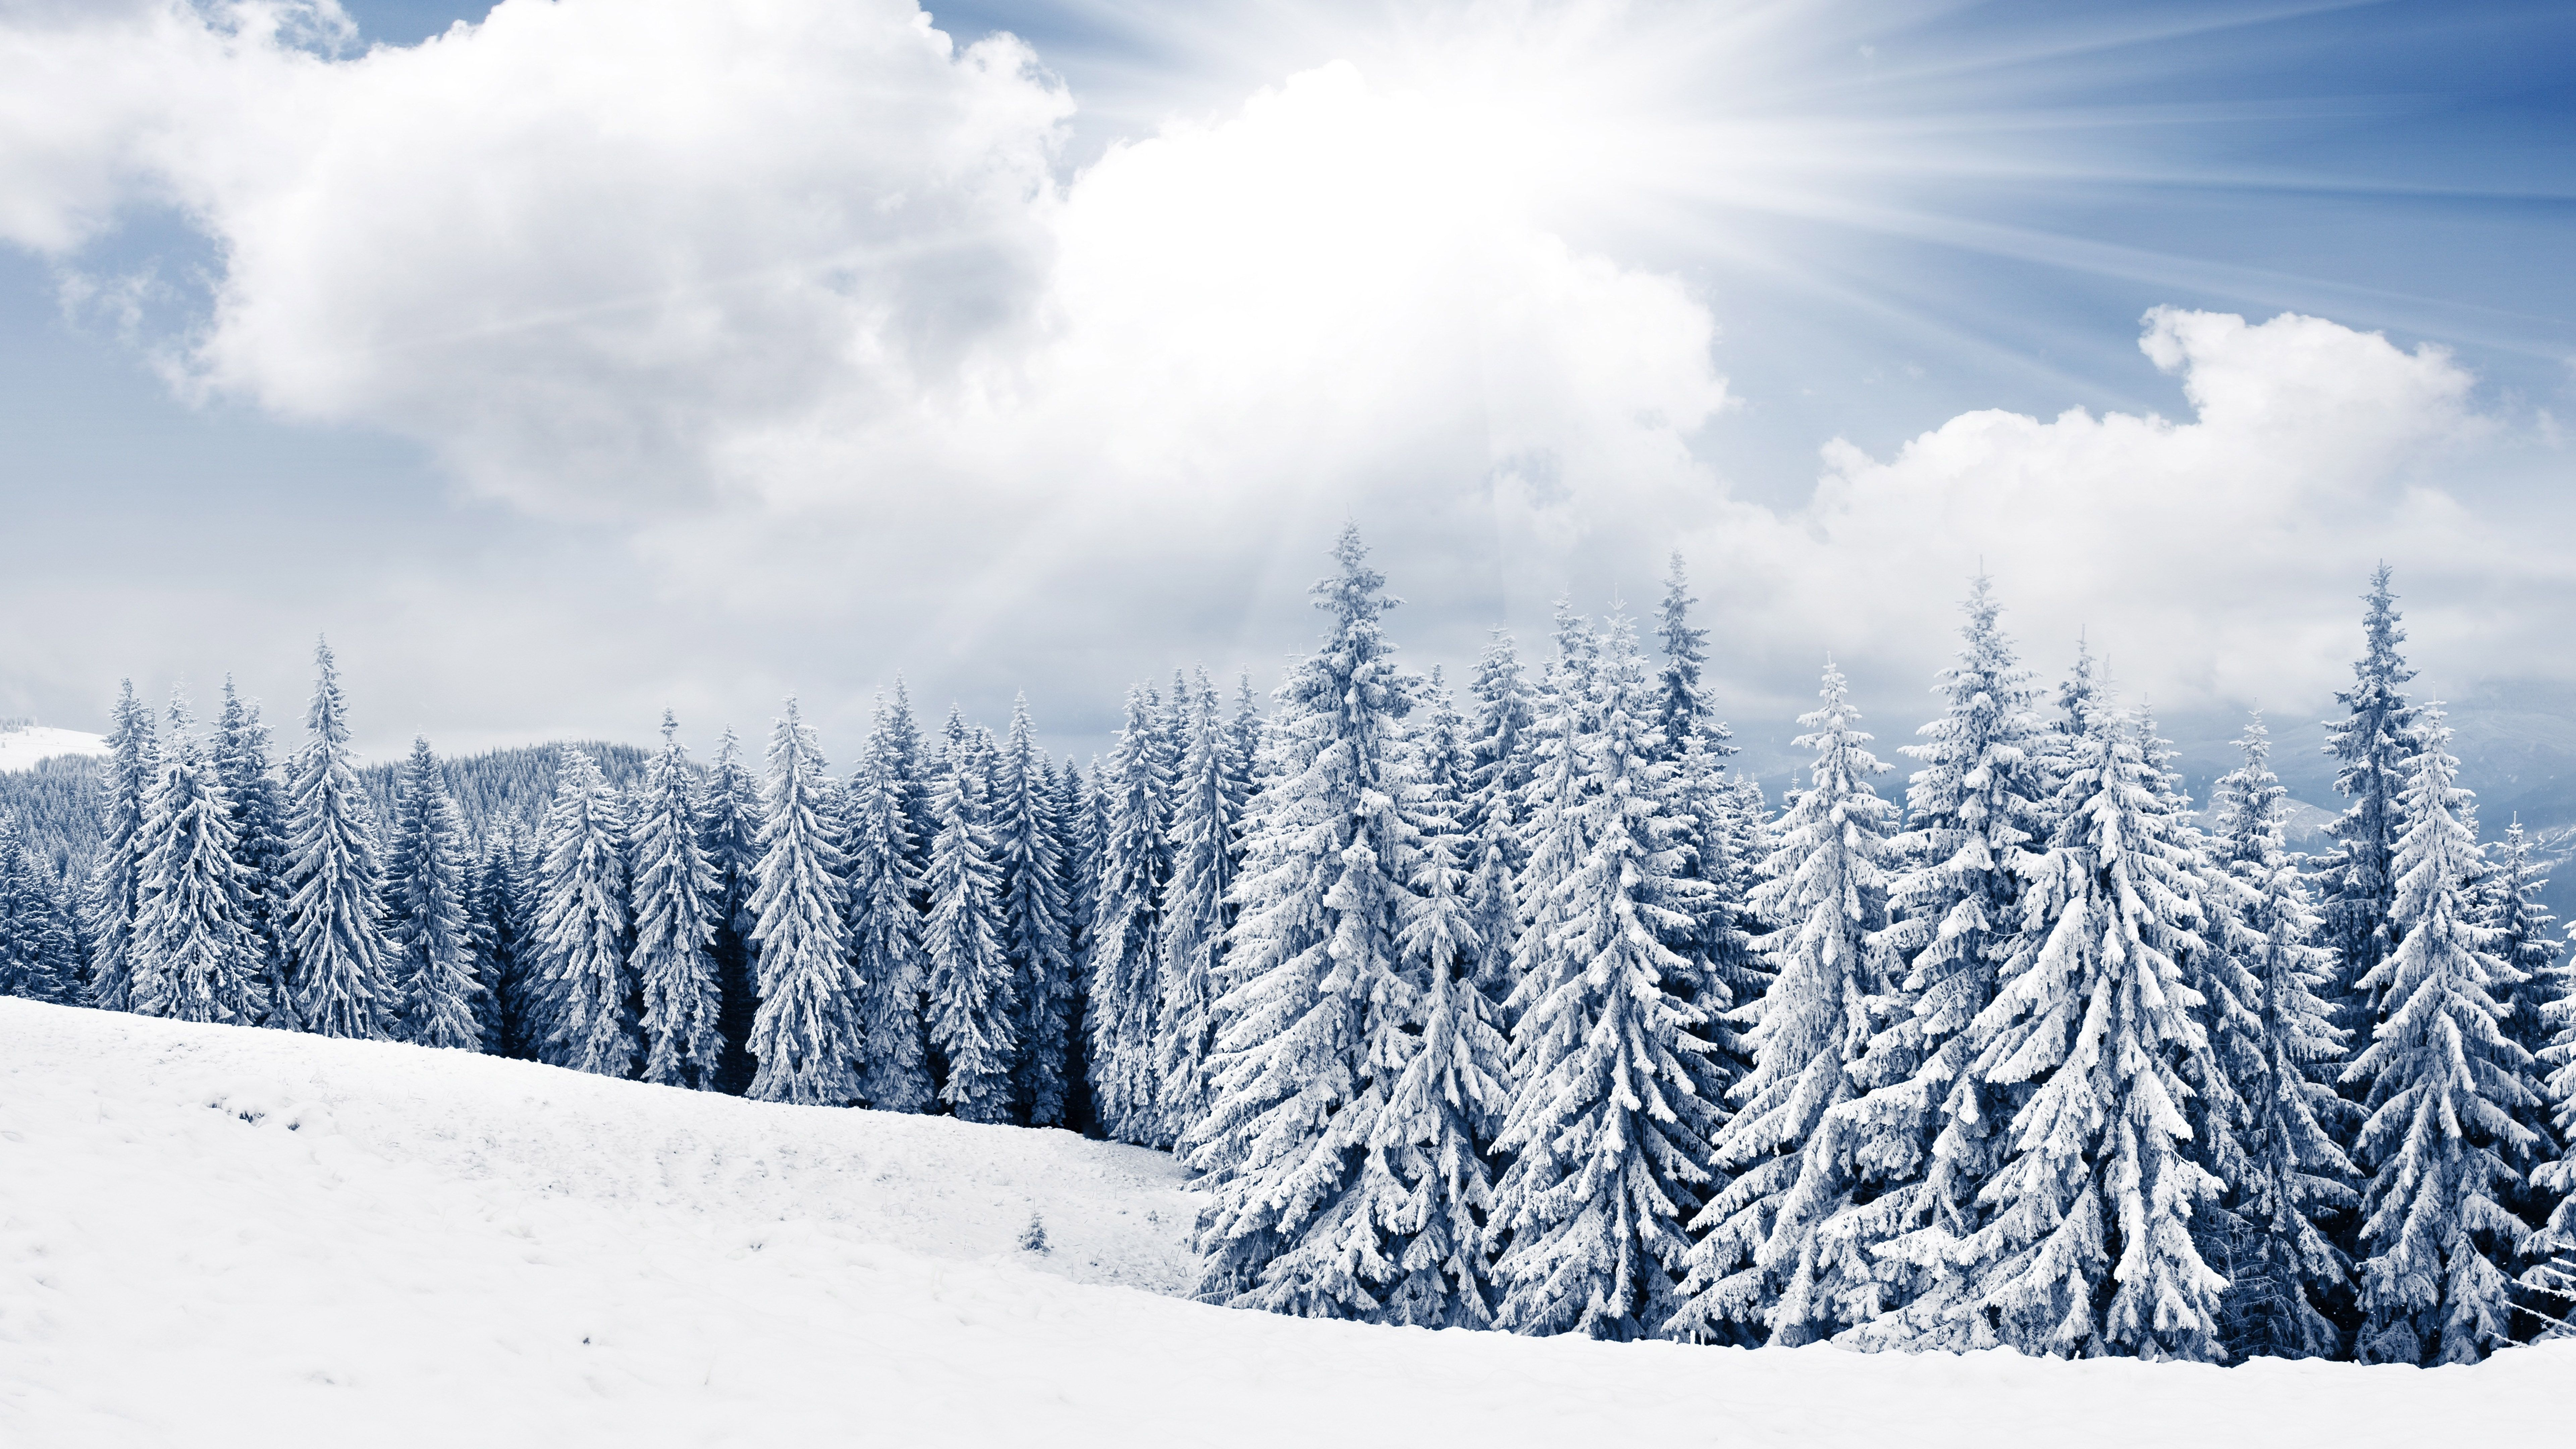 Winter Tree Wallpapers - Top Free Winter Tree Backgrounds